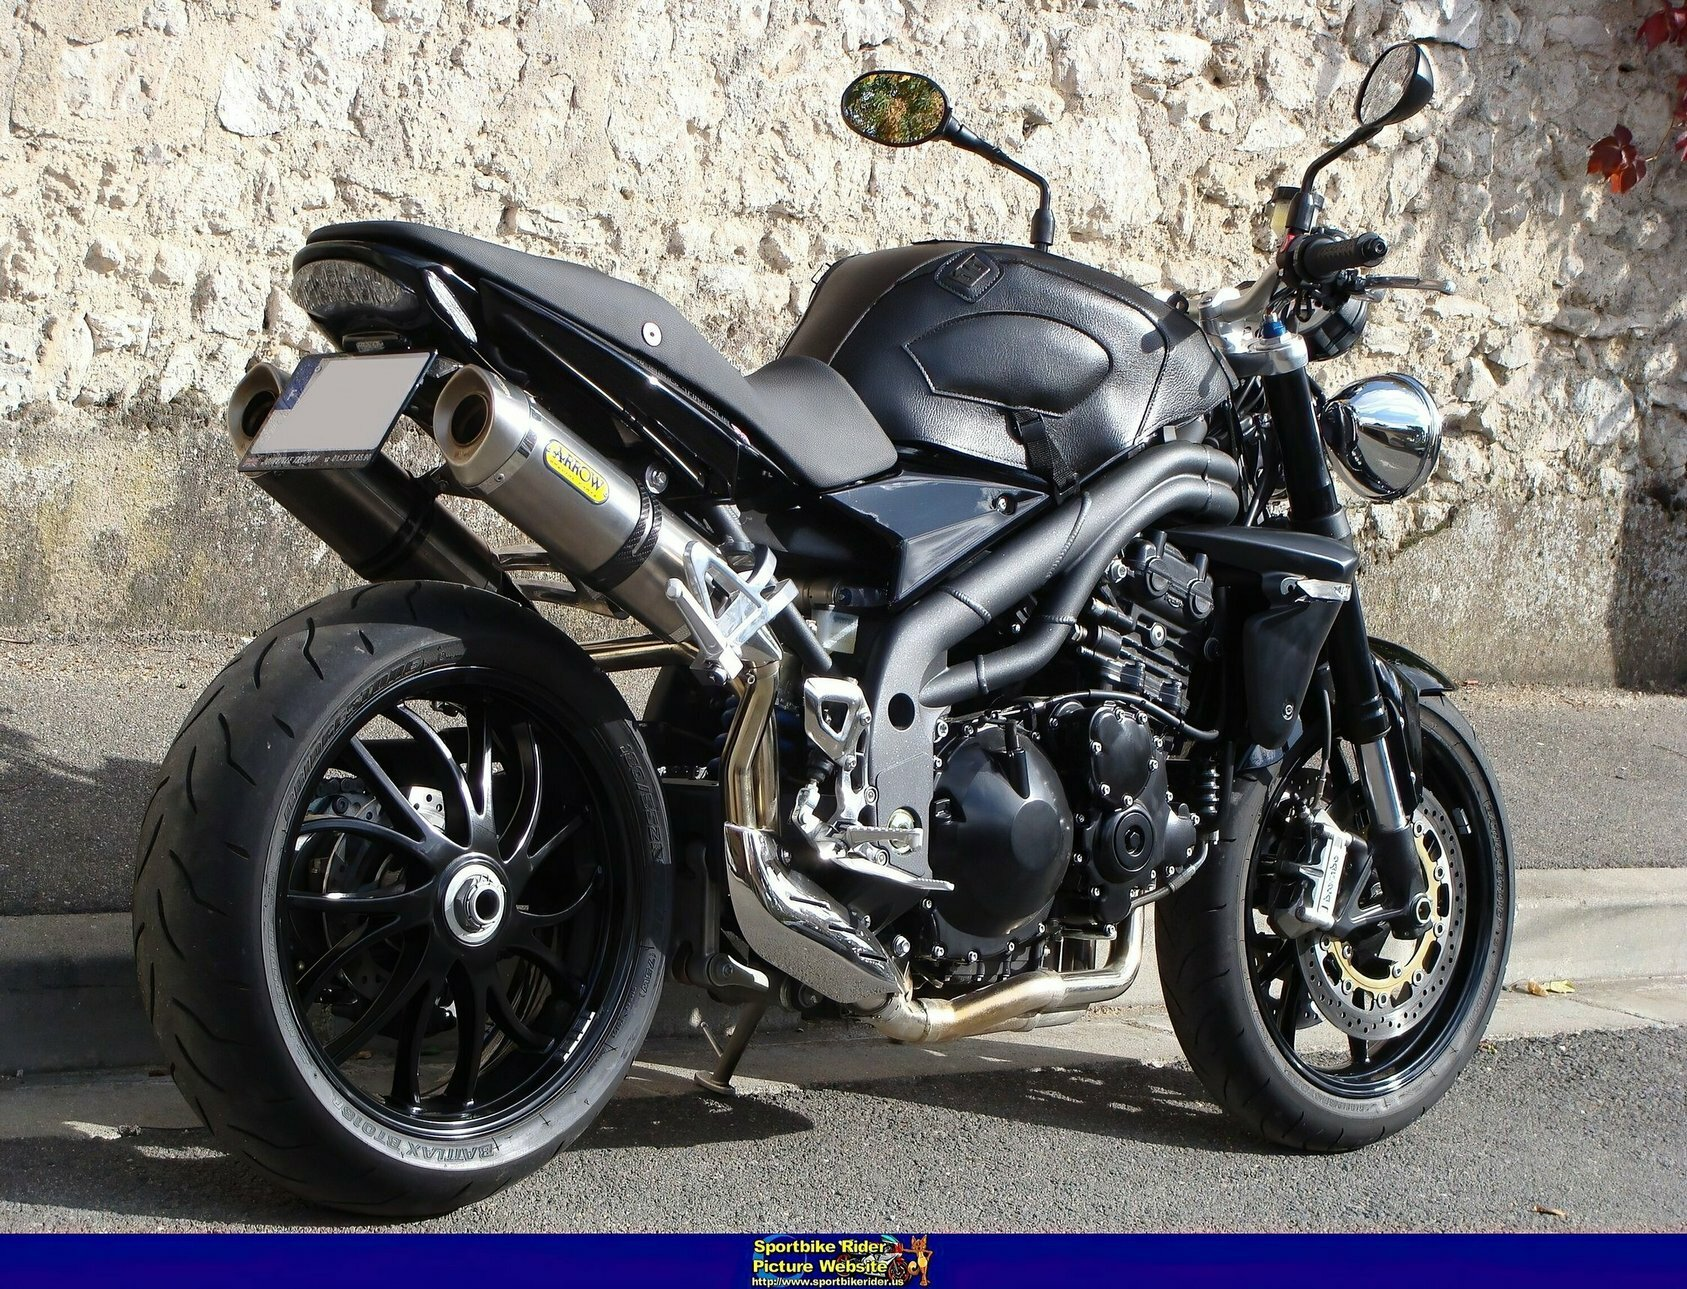 Triumph Speed Triple - ID: 338471